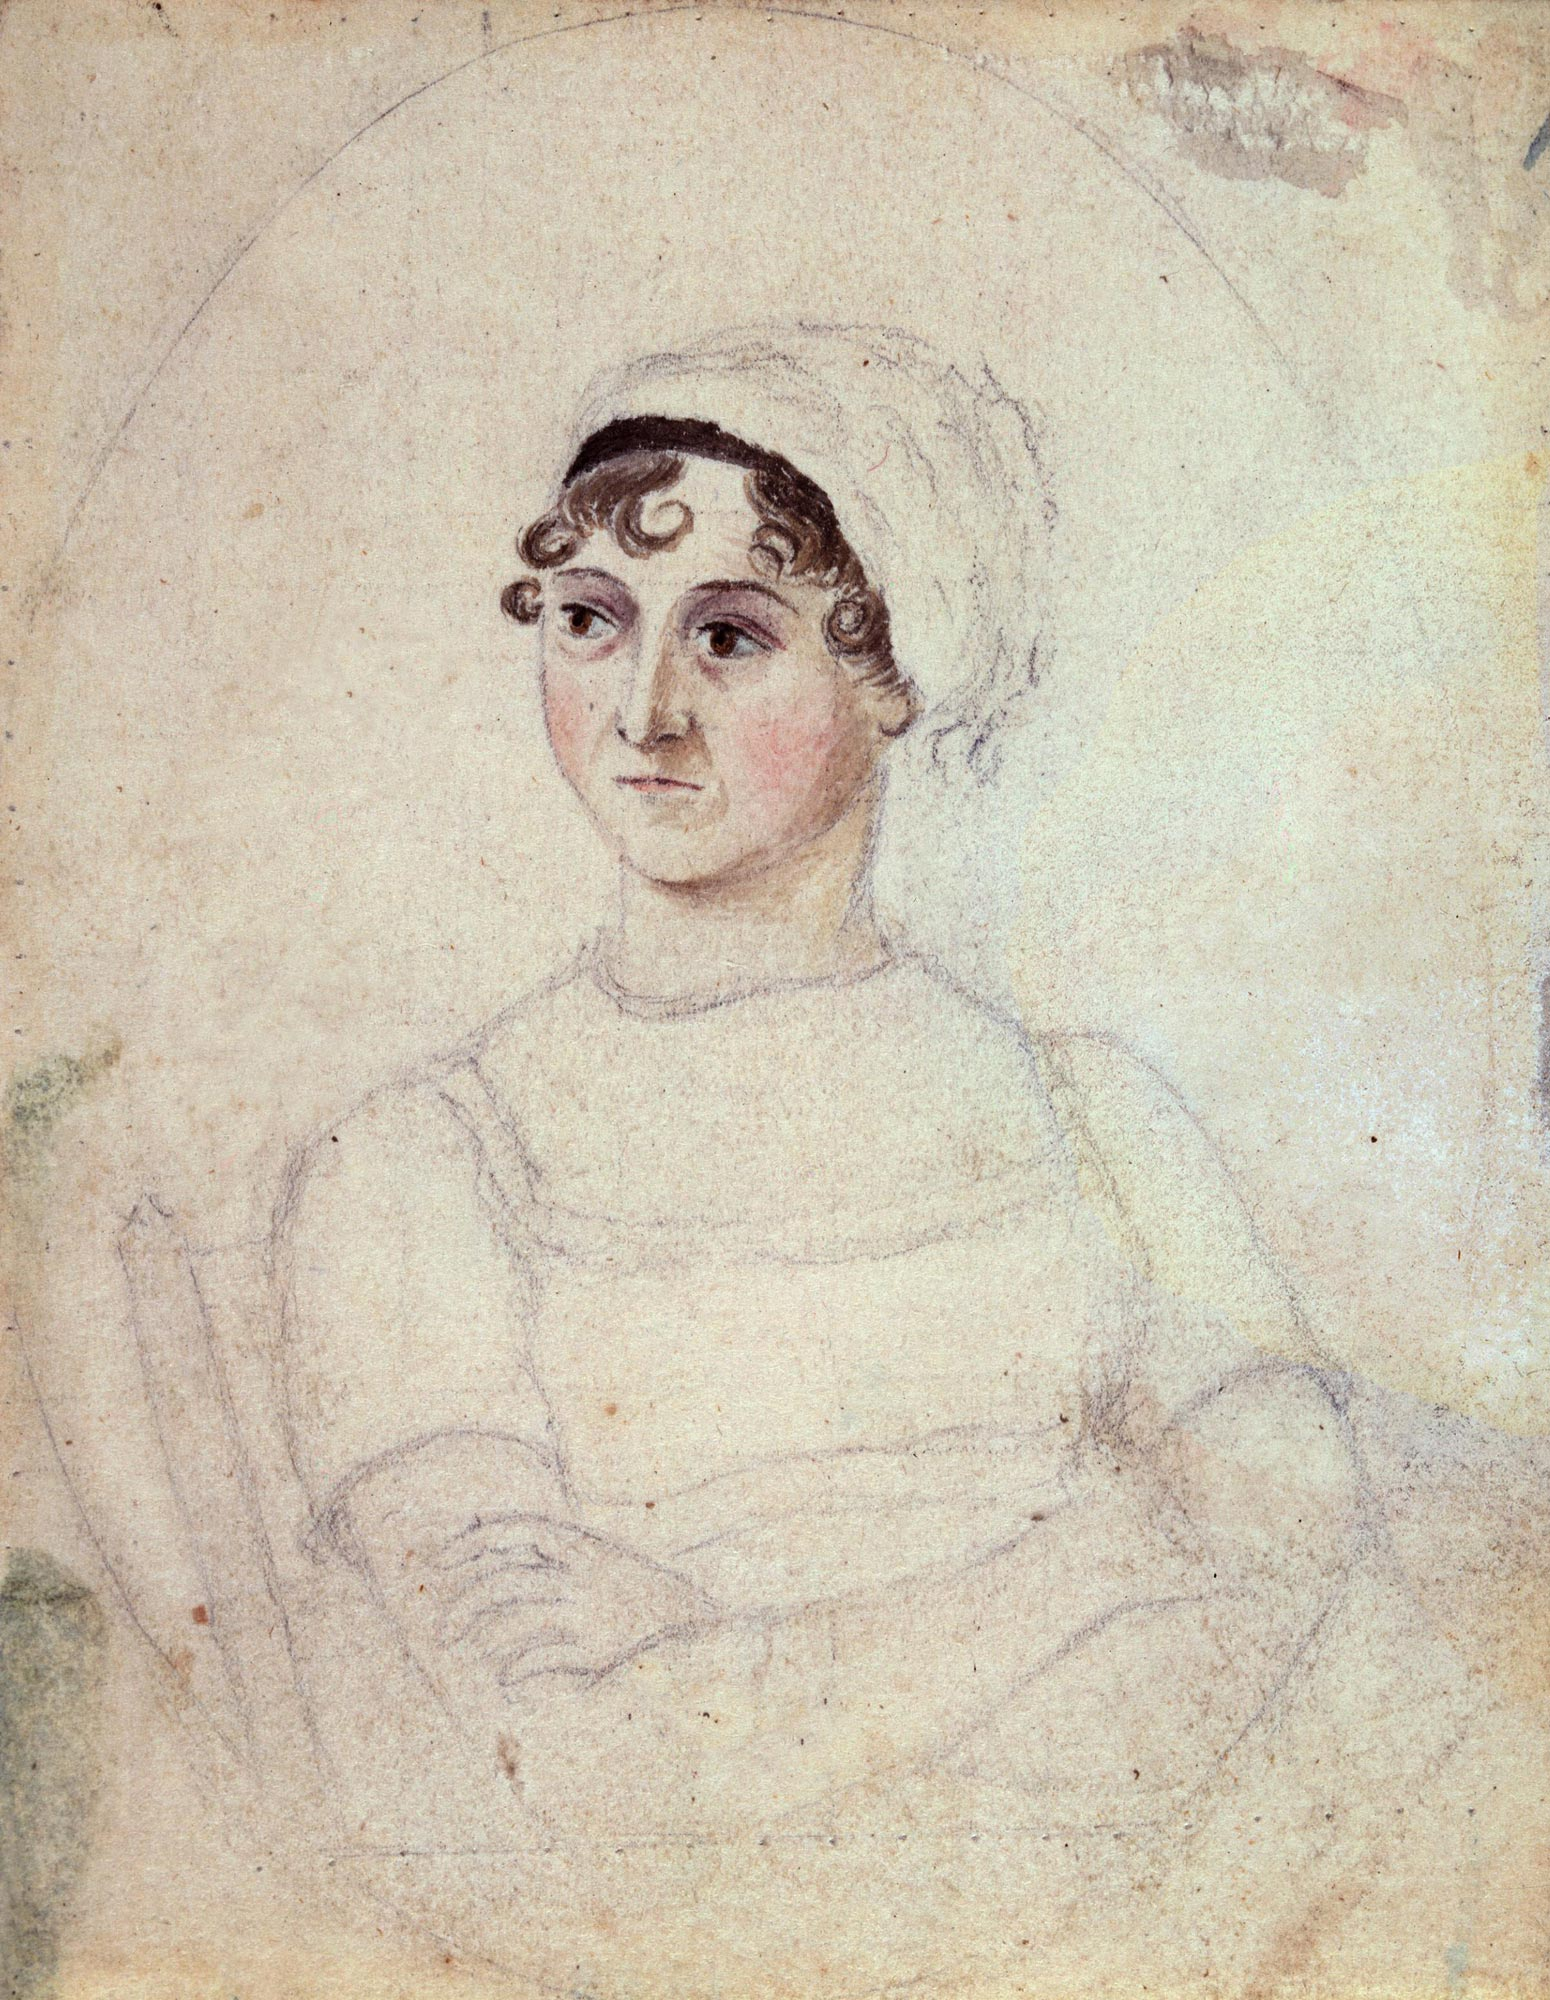 Jane Austen, author of Sense and Sensibility and Pride and Prejudice. Portrait by her sister, Cassandra Austen © National Portrait Gallery, London.